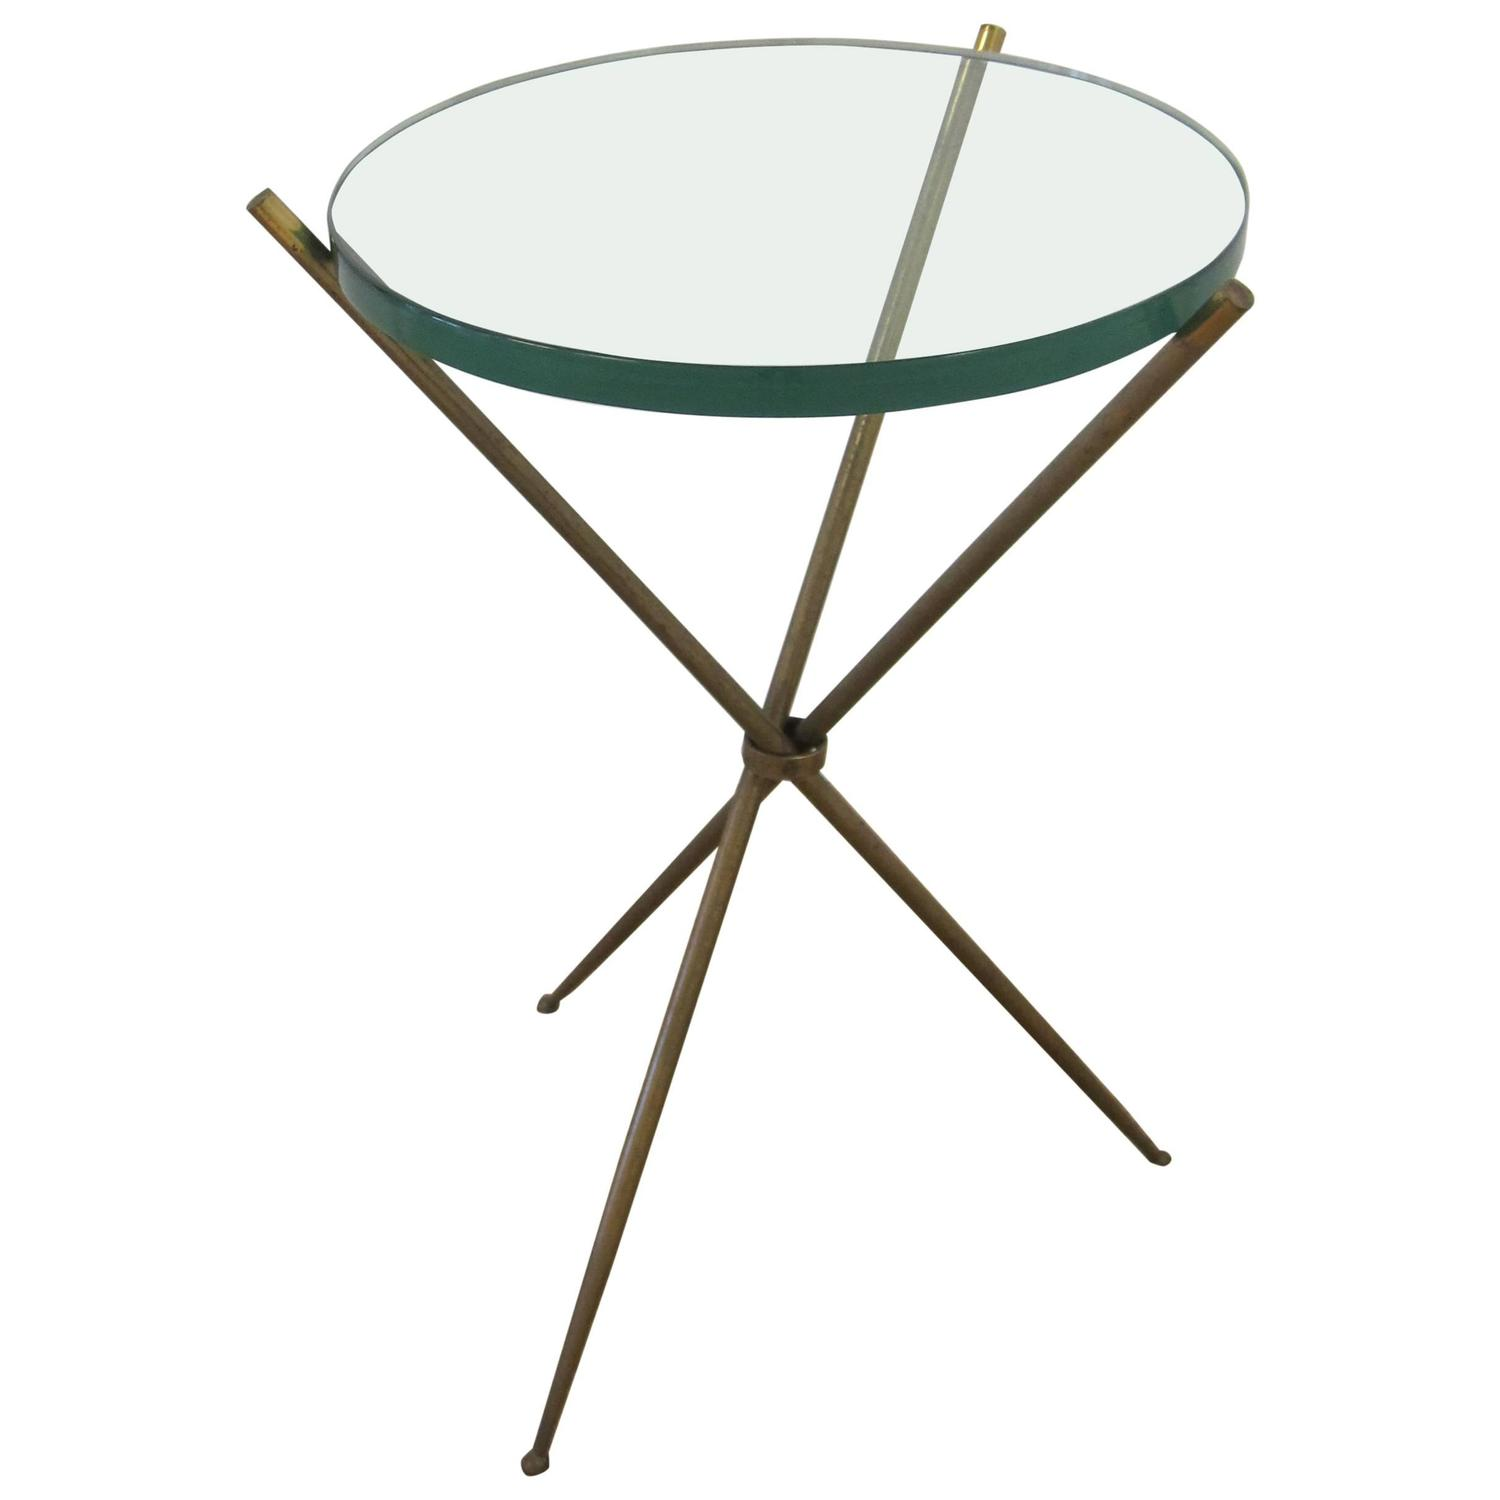 Vintage Modern Italian Brass and Glass Tripod Side Table after Gio